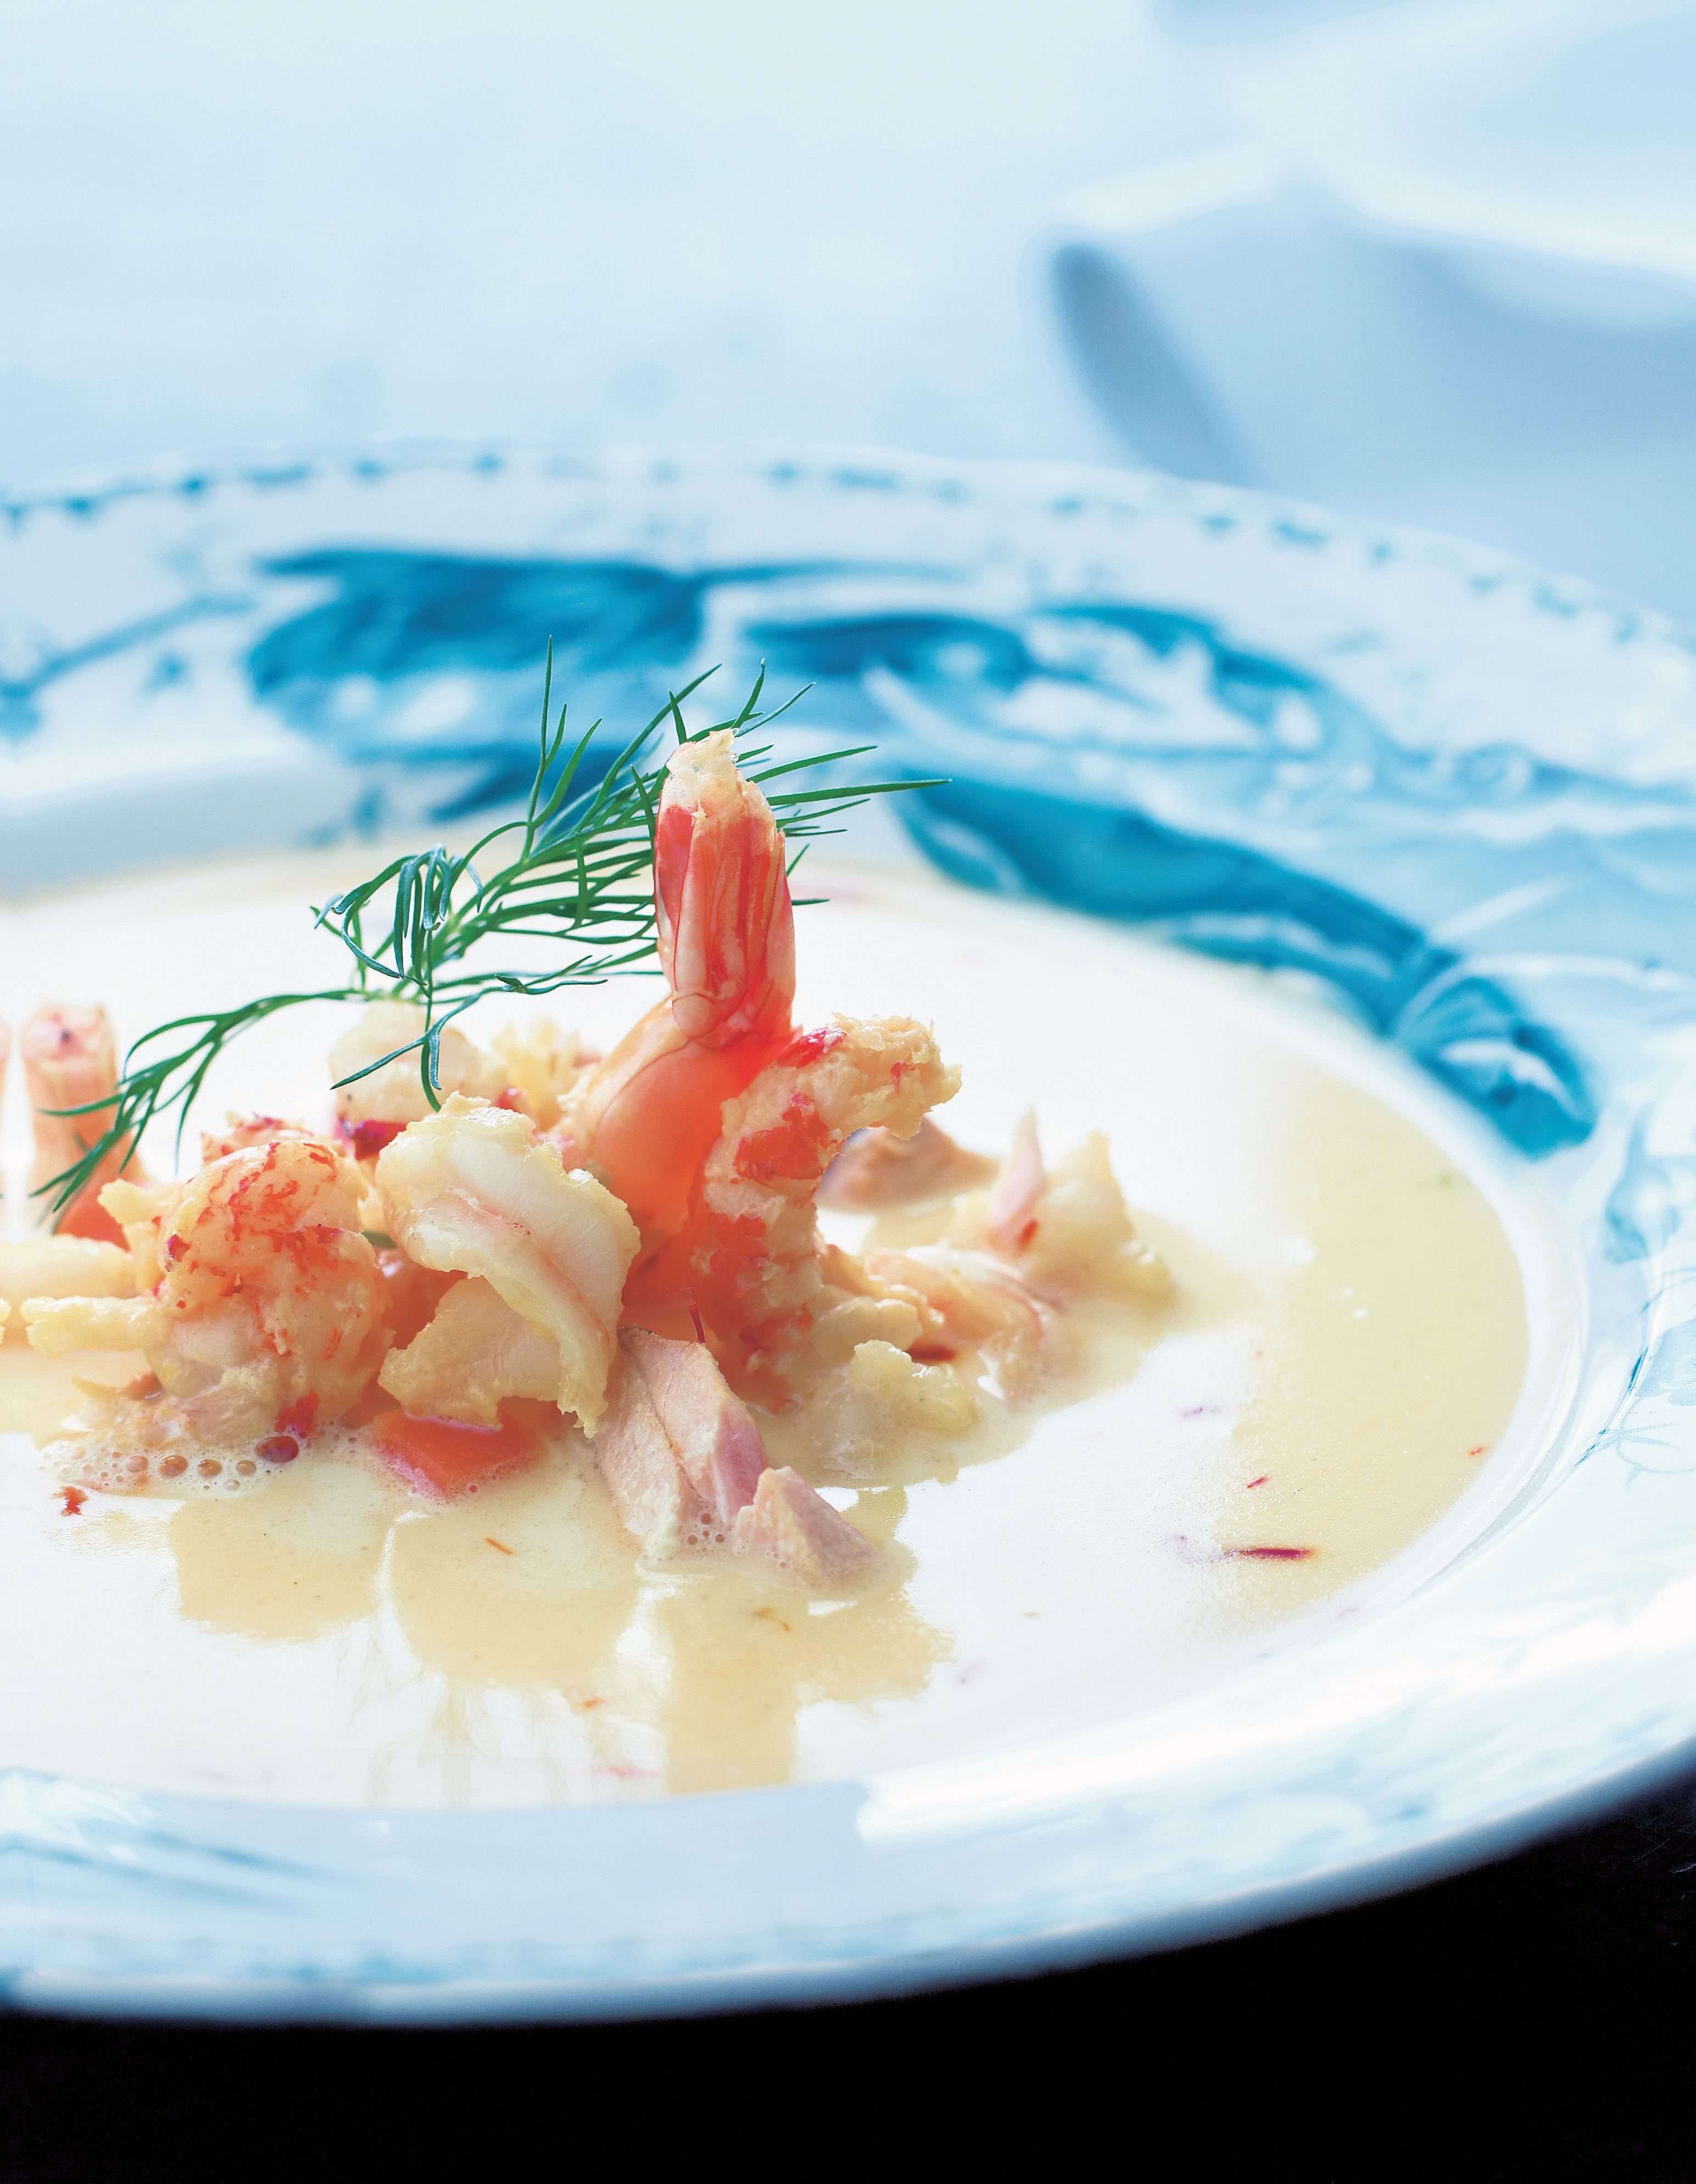 Skagen fish soup